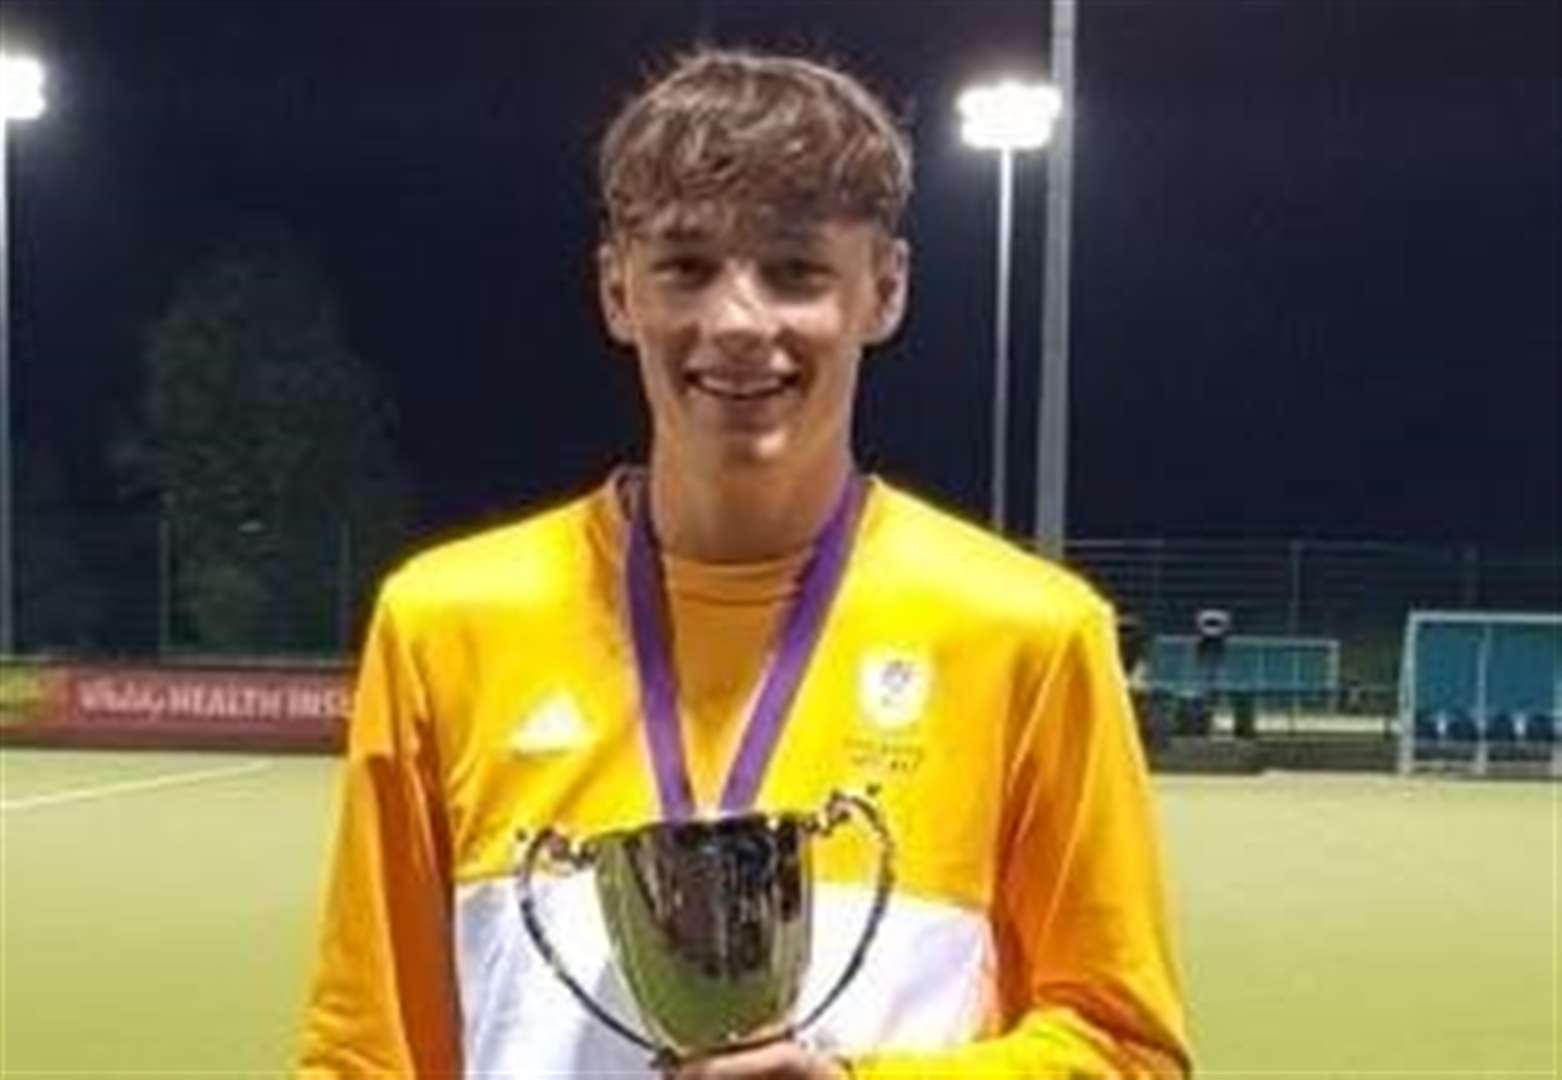 HOCKEY: Stamford School duo earn national recognition